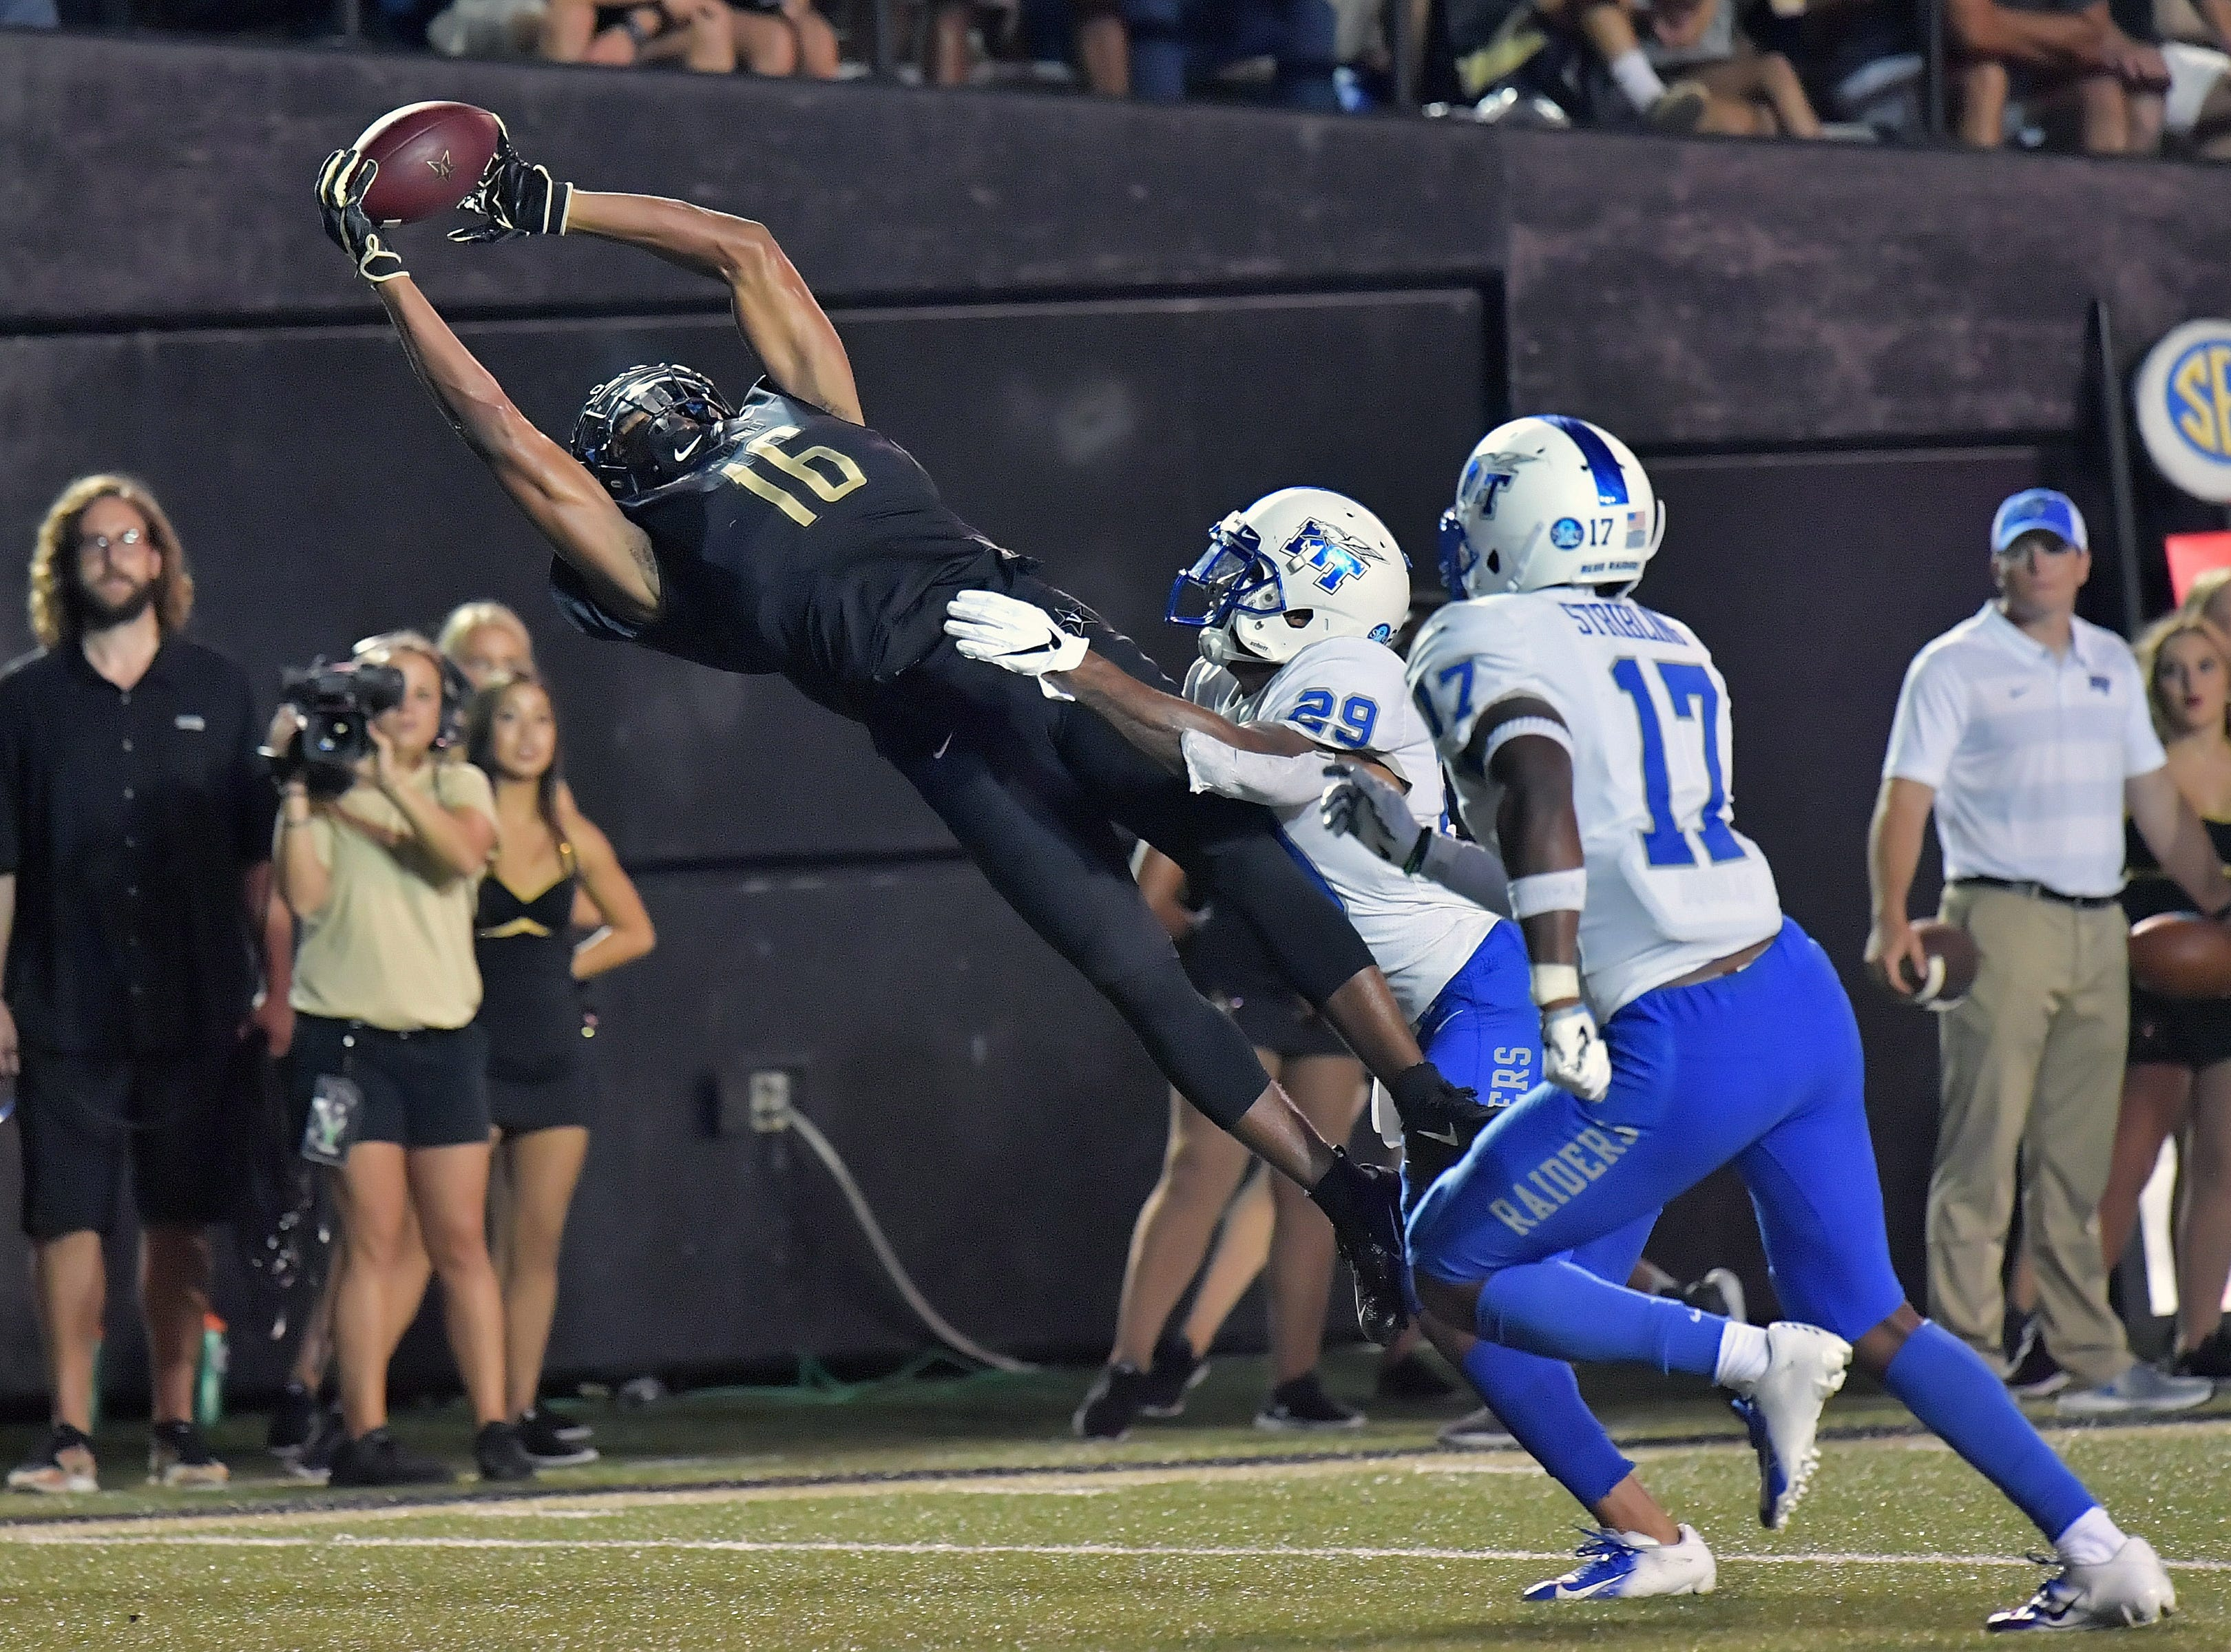 Vanderbilt Commodores wide receiver Kalija Lipscomb (16) catches a pass for a touchdown against the Middle Tennessee Blue Raiders.